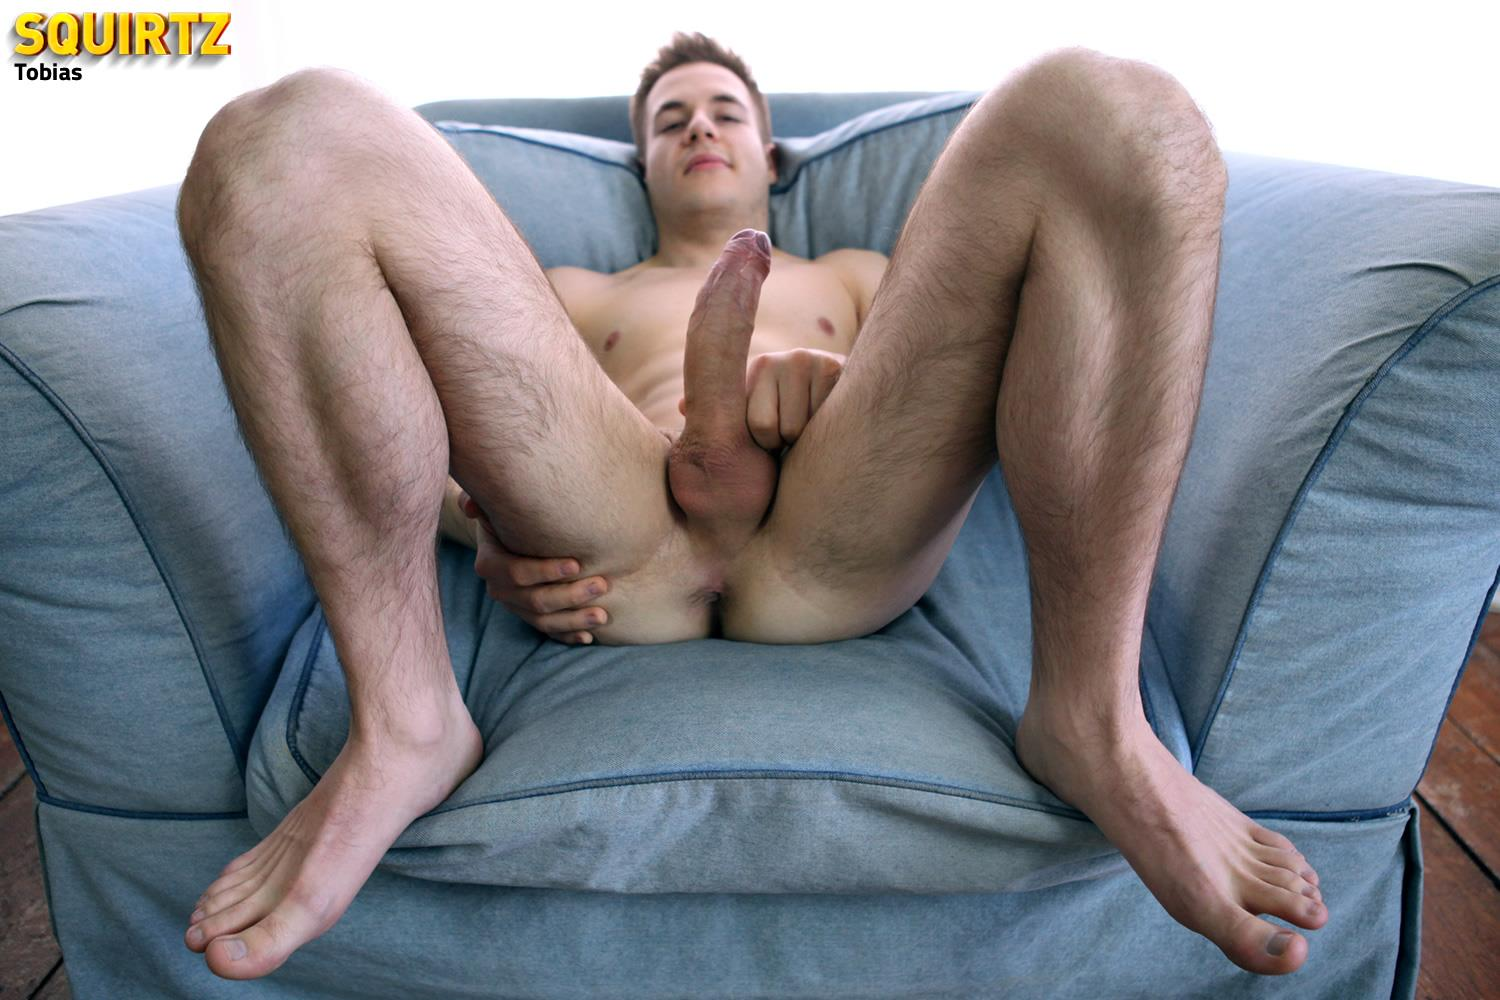 Squirtz Tobias Hairy Legged Twink Masturbating Big Uncut Cock Amateur Gay Porn 10 Amateur Hairy Leg Twink Stroking His Big Uncut Cock